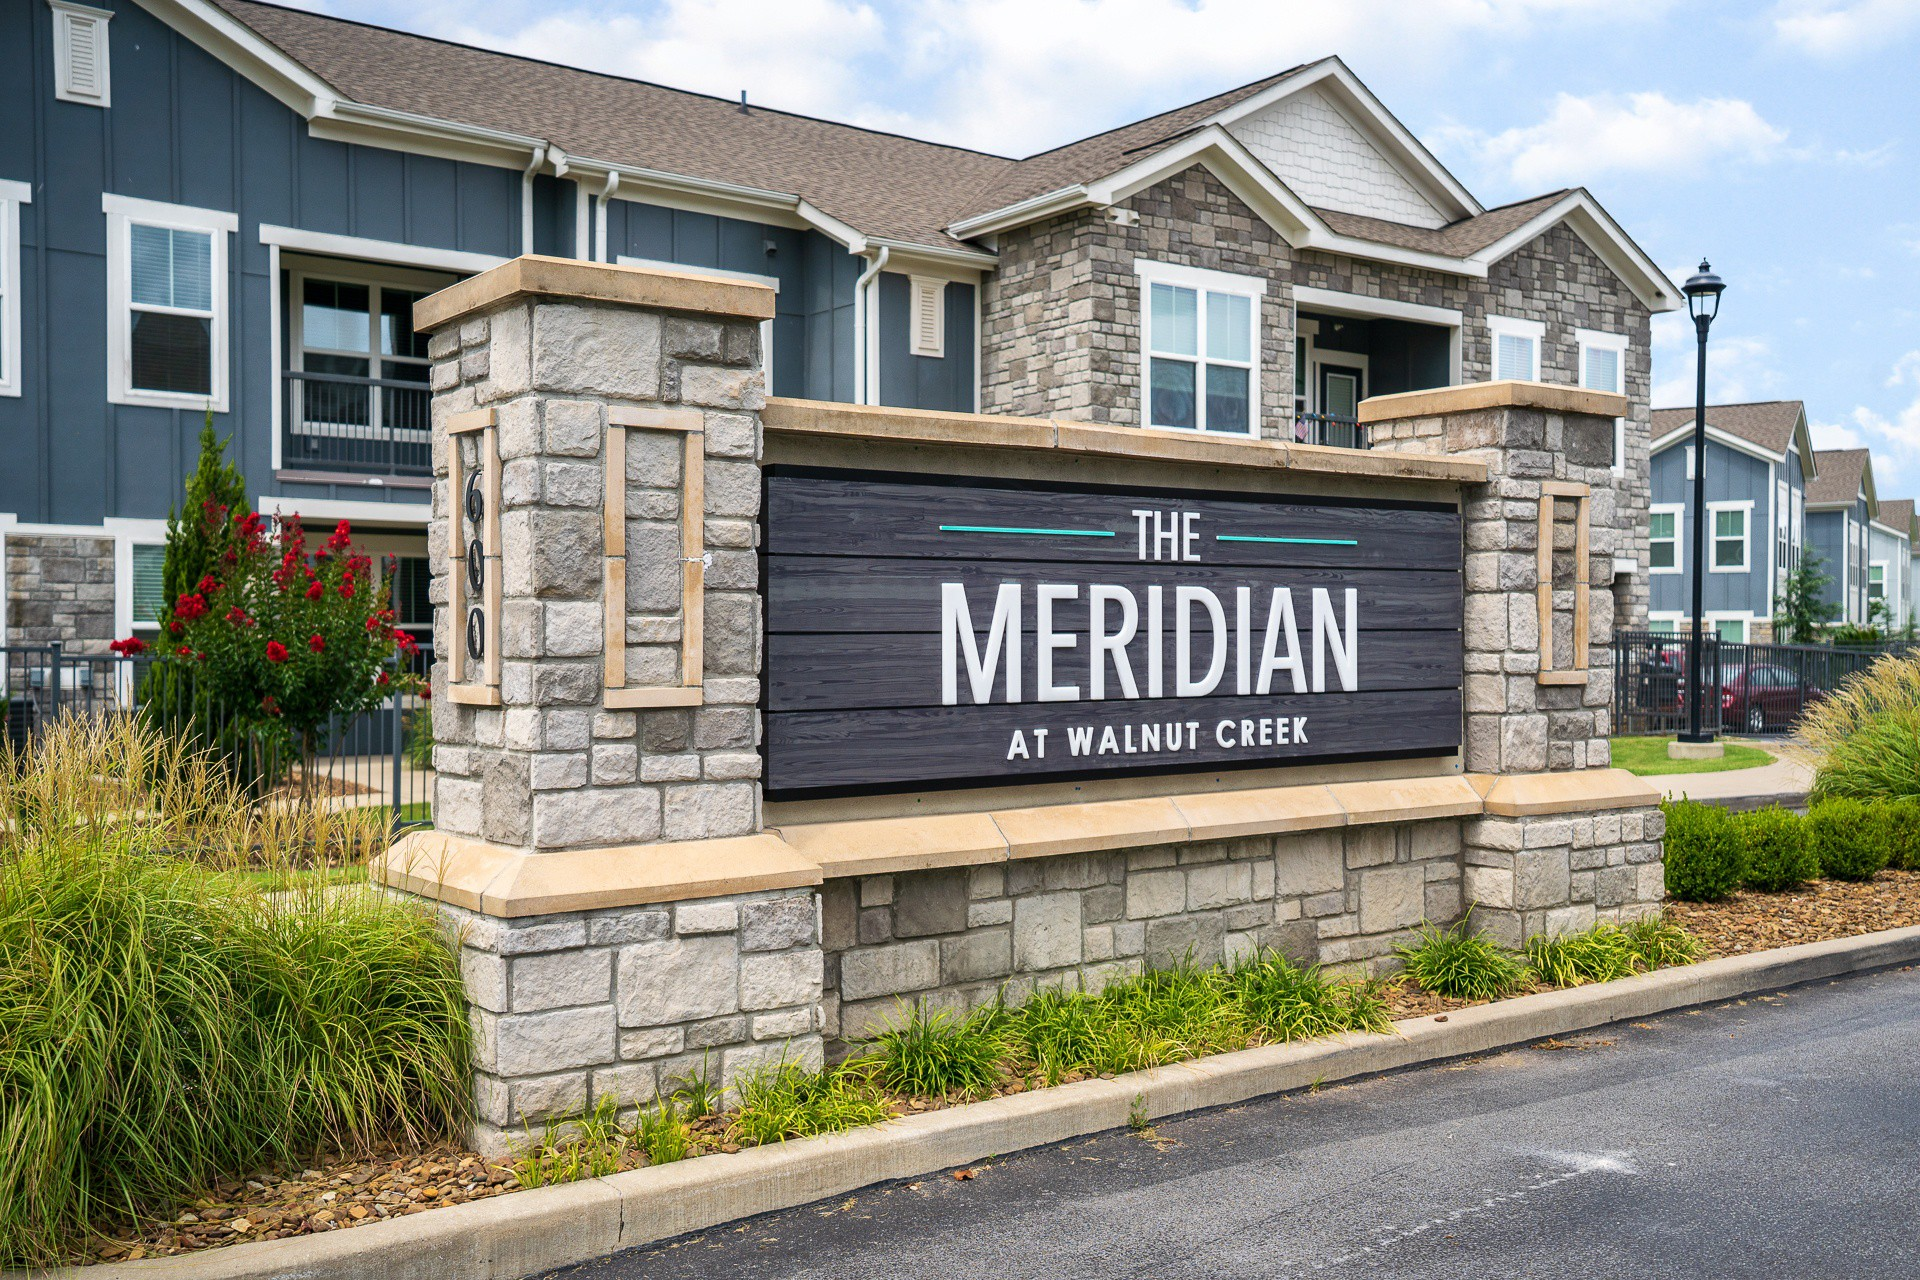 Apartments Near Blue Cliff College-Fayetteville The Meridian at Walnut Creek for Blue Cliff College-Fayetteville Students in Fayetteville, AR